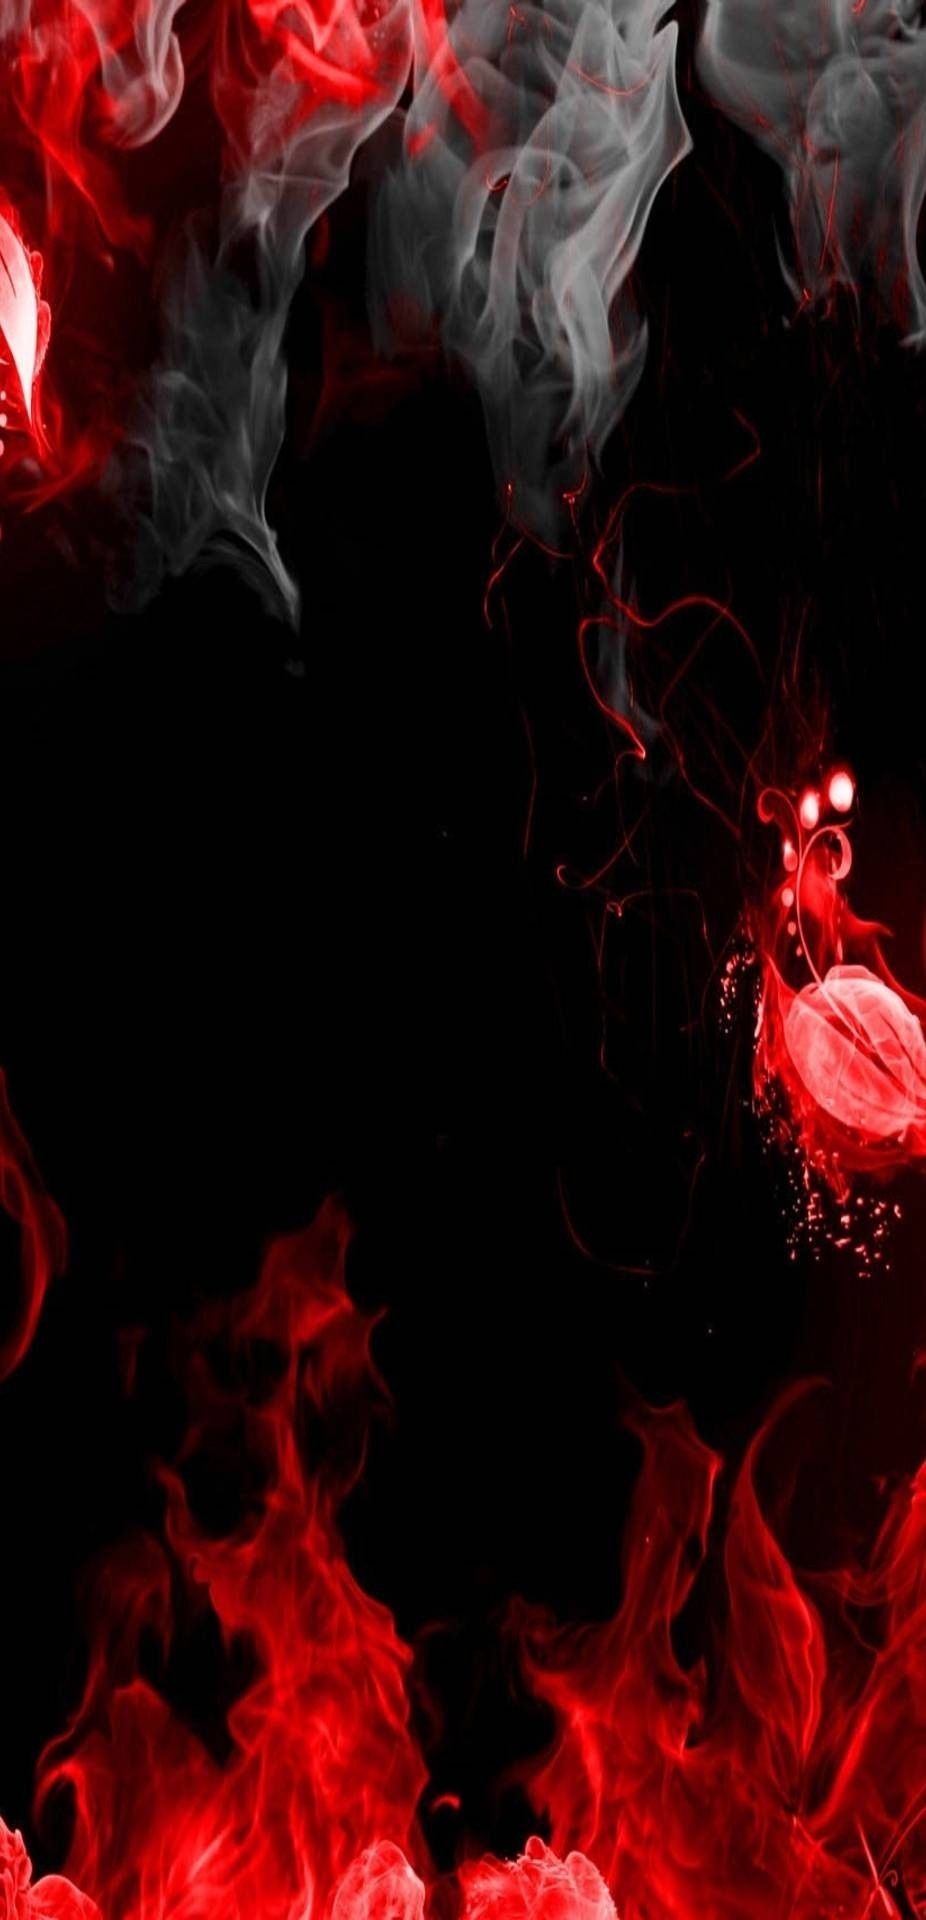 Pin By Chakir Van Der Kleijn On Just Creative Smoke Wallpaper Red And White Wallpaper Red And Black Wallpaper